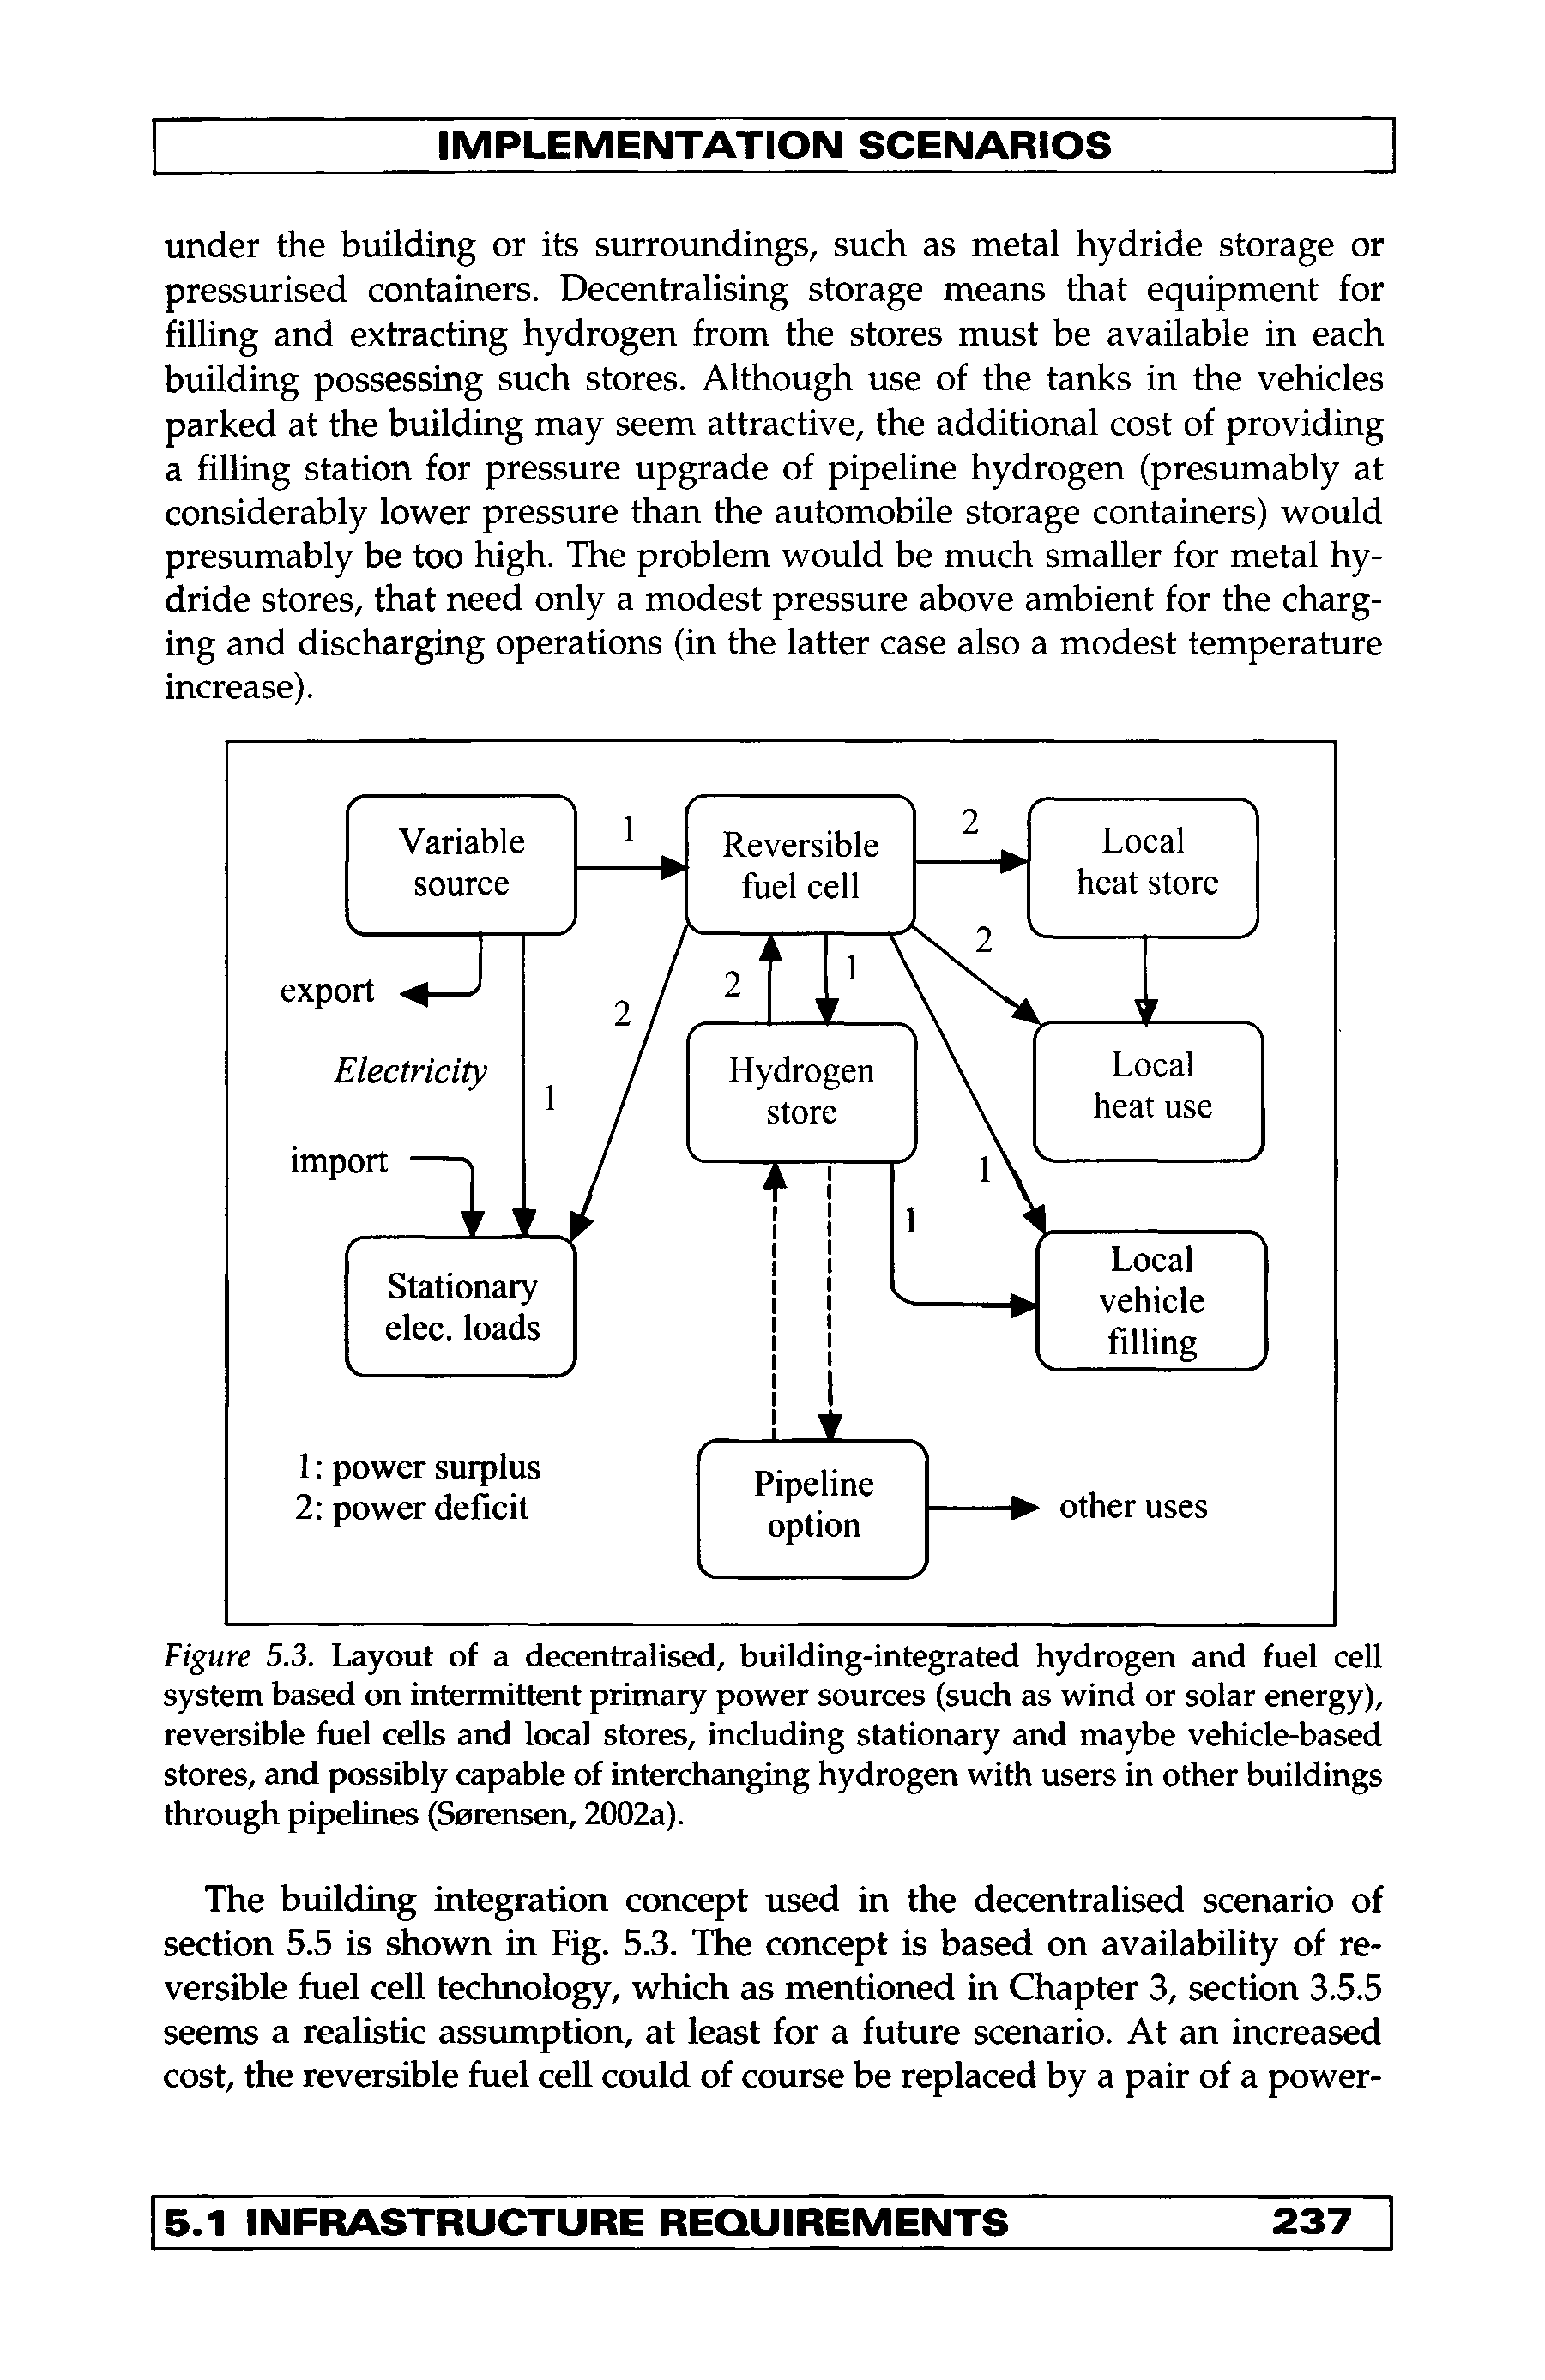 Figure 5.3. Layout of a decentralised, building-integrated hydrogen and fuel cell system based on intermittent primary power sources (such as wind or solar energy), reversible fuel cells and local stores, including stationary and maybe vehicle-based stores, and possibly capable of interchanging hydrogen with users in other buildings through pipelines (Sorensen, 2002a).